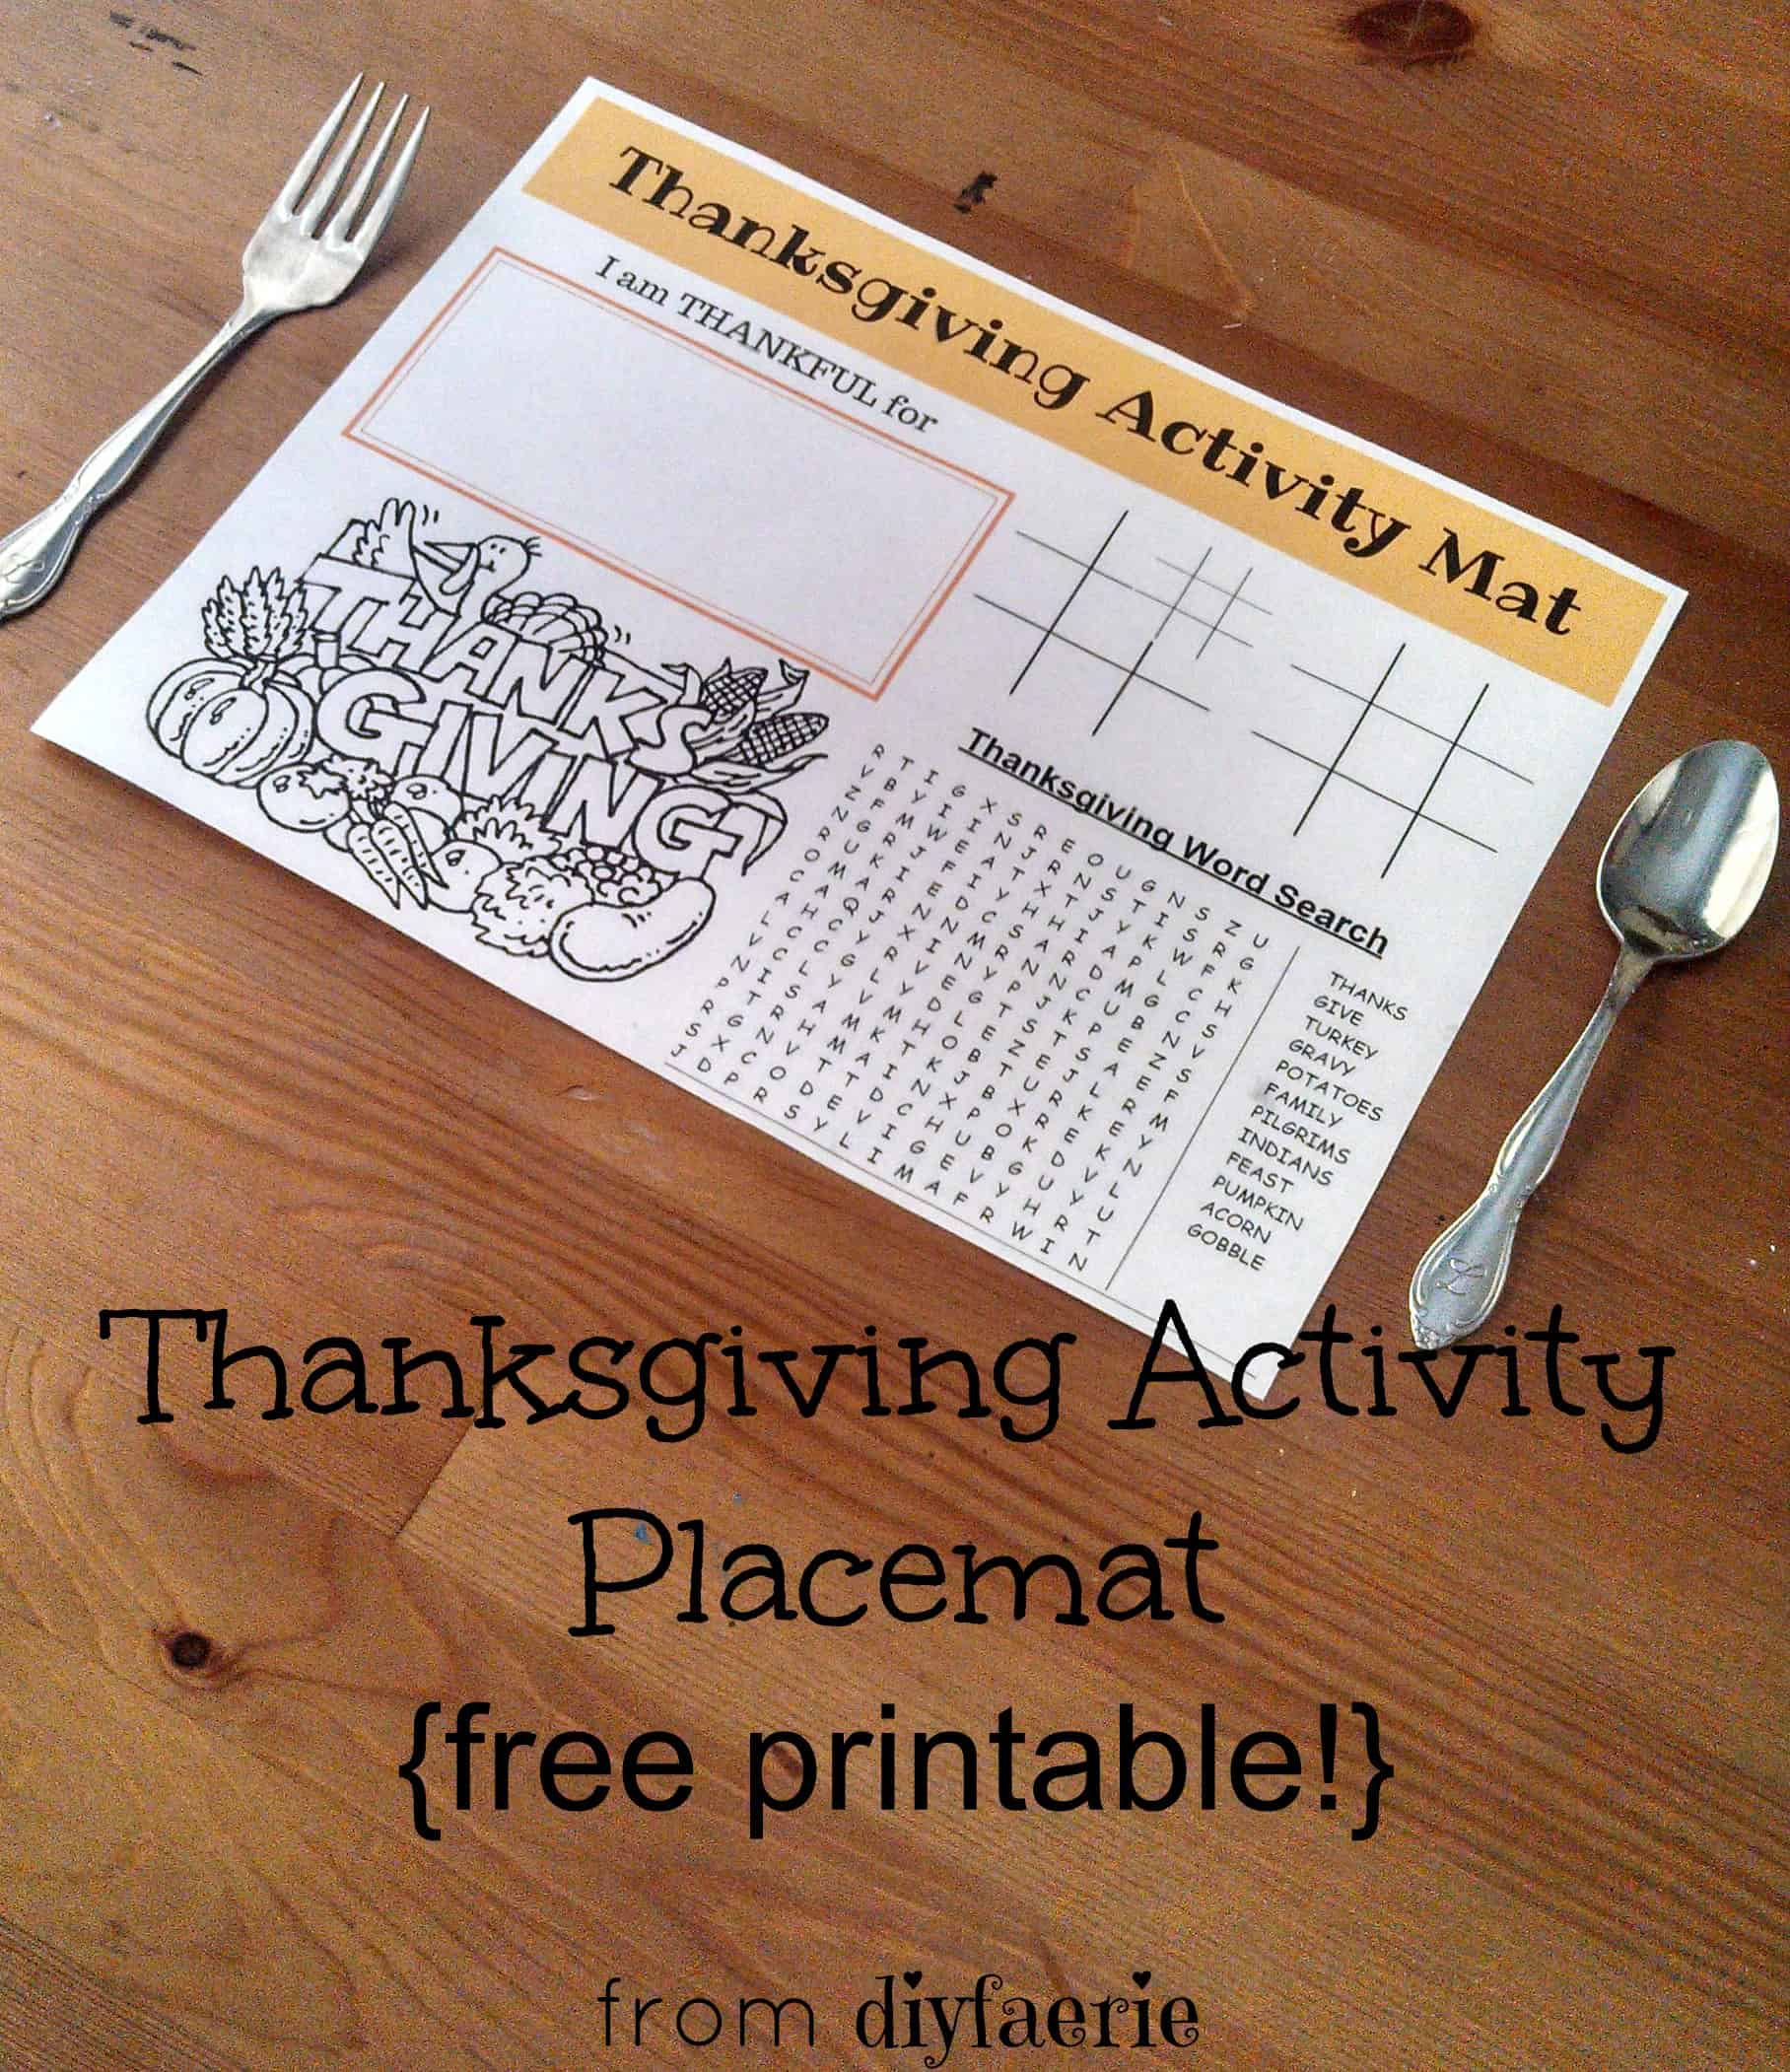 Thanksgiving Activity Placemat | diyfaerie